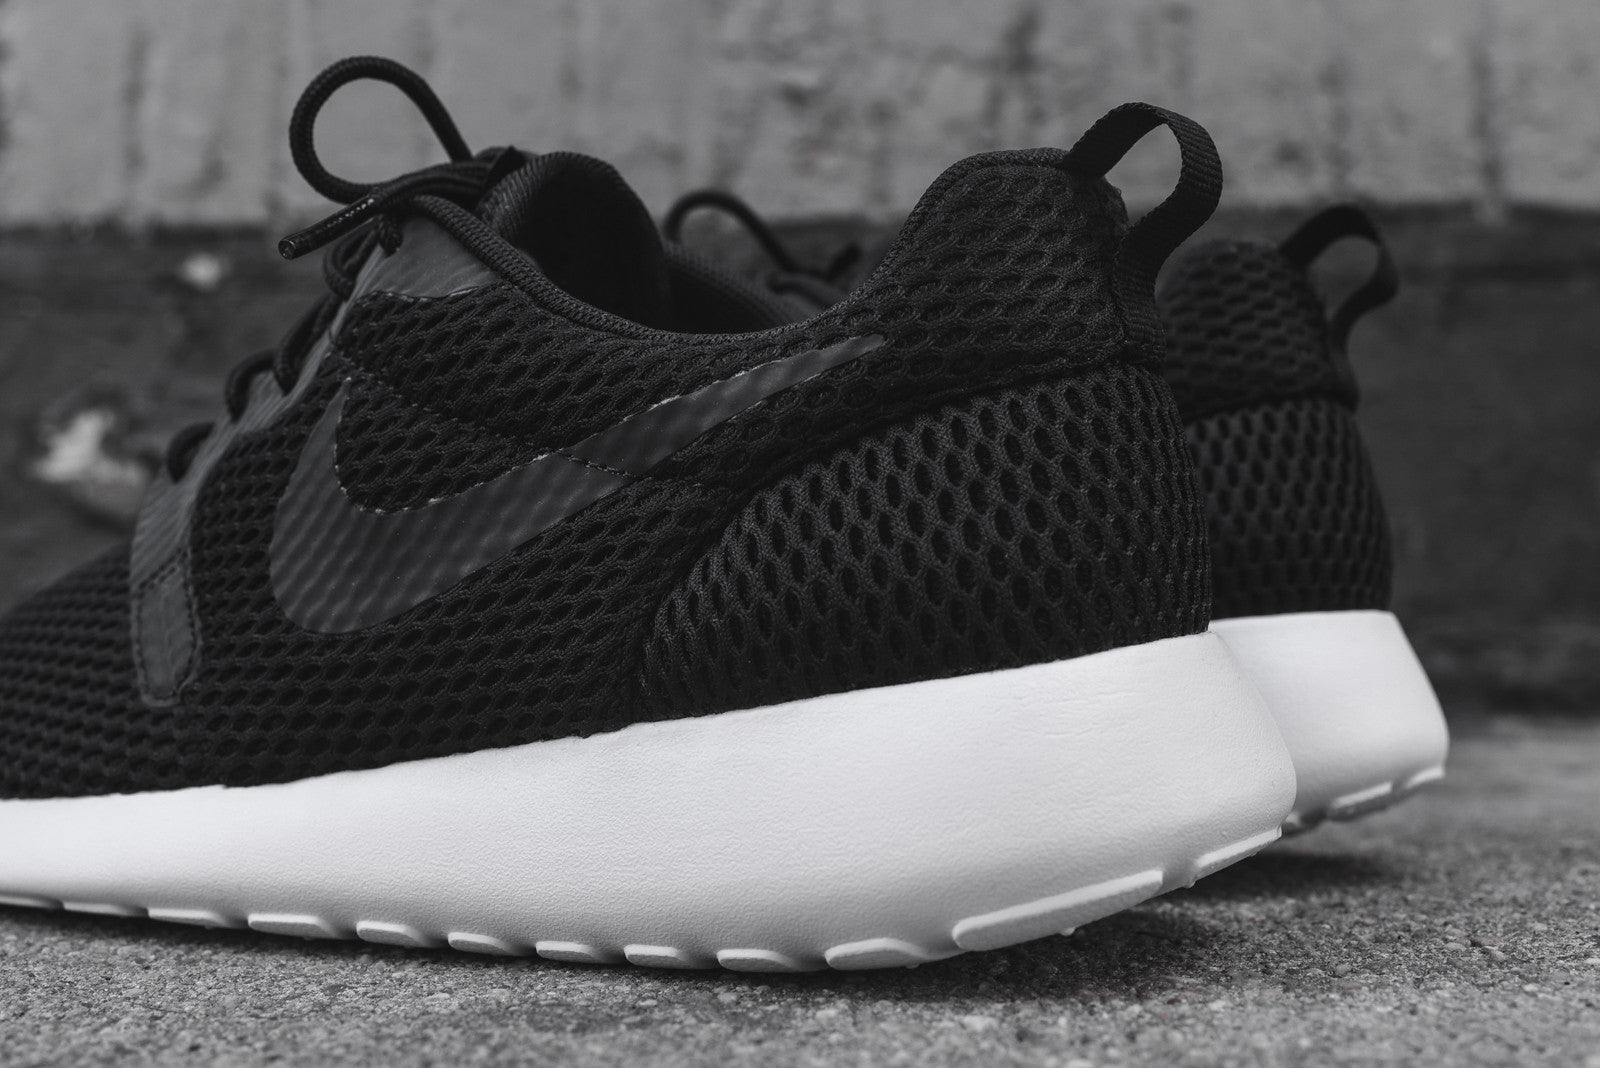 Roshe One Hyperfuse Black